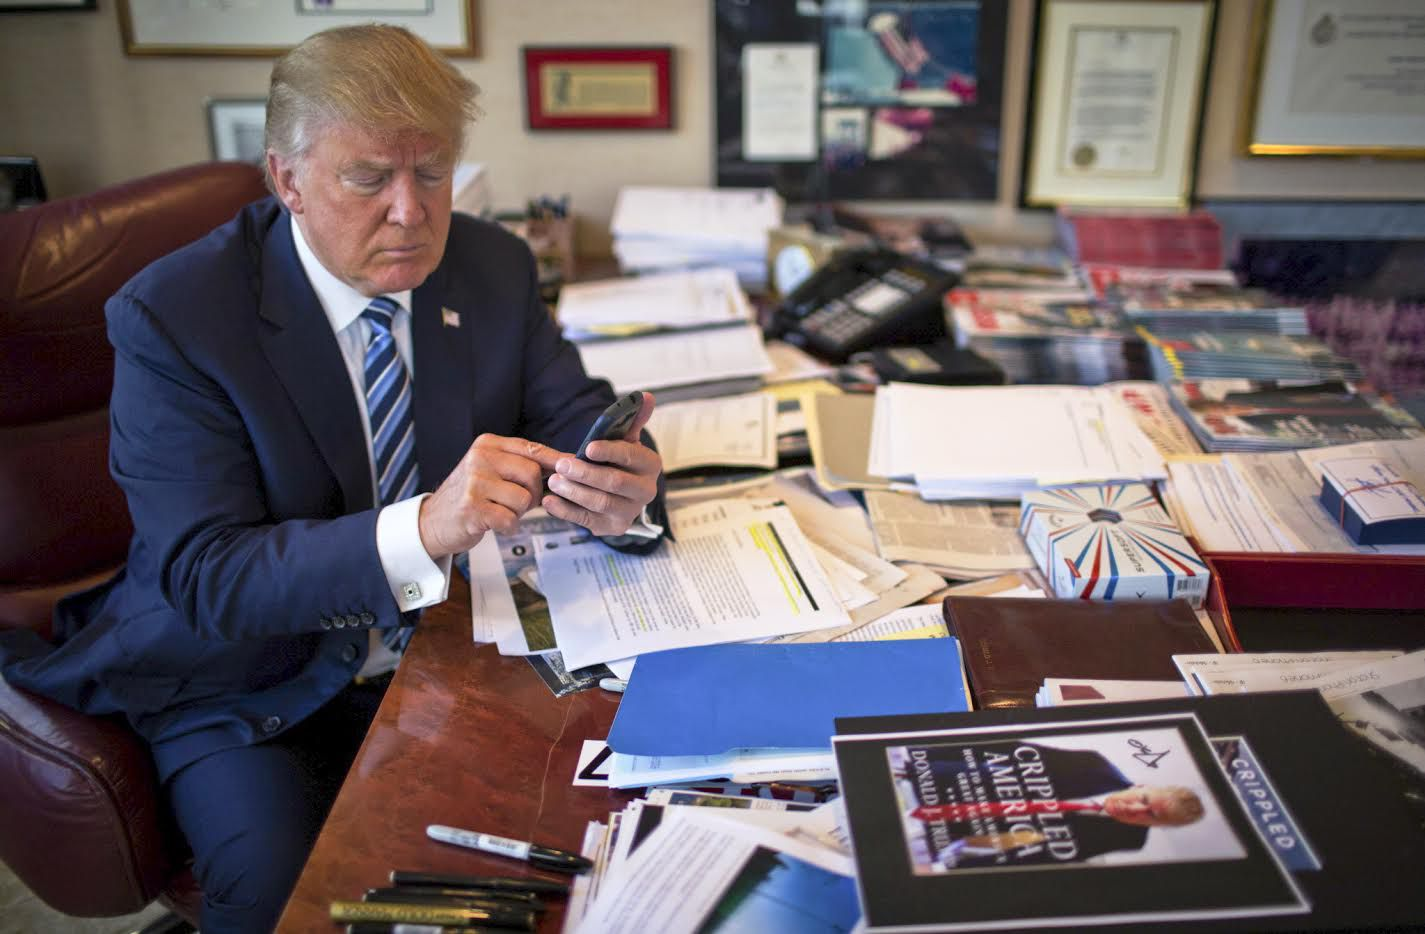 FILE-- Donald Trump demonstrates his tweeting skills in his office at Trump Tower in New York, Sept. 29, 2015. China's leaders thought they had a solution to the torrent of snark, jibes and condemnation on Twitter: They banned access to it at home. Yet in a twist, China has become the country that the now President-elect seems to enjoy criticizing the most on his open-all-hours Twitter feed. (Josh Haner/The New York Times)